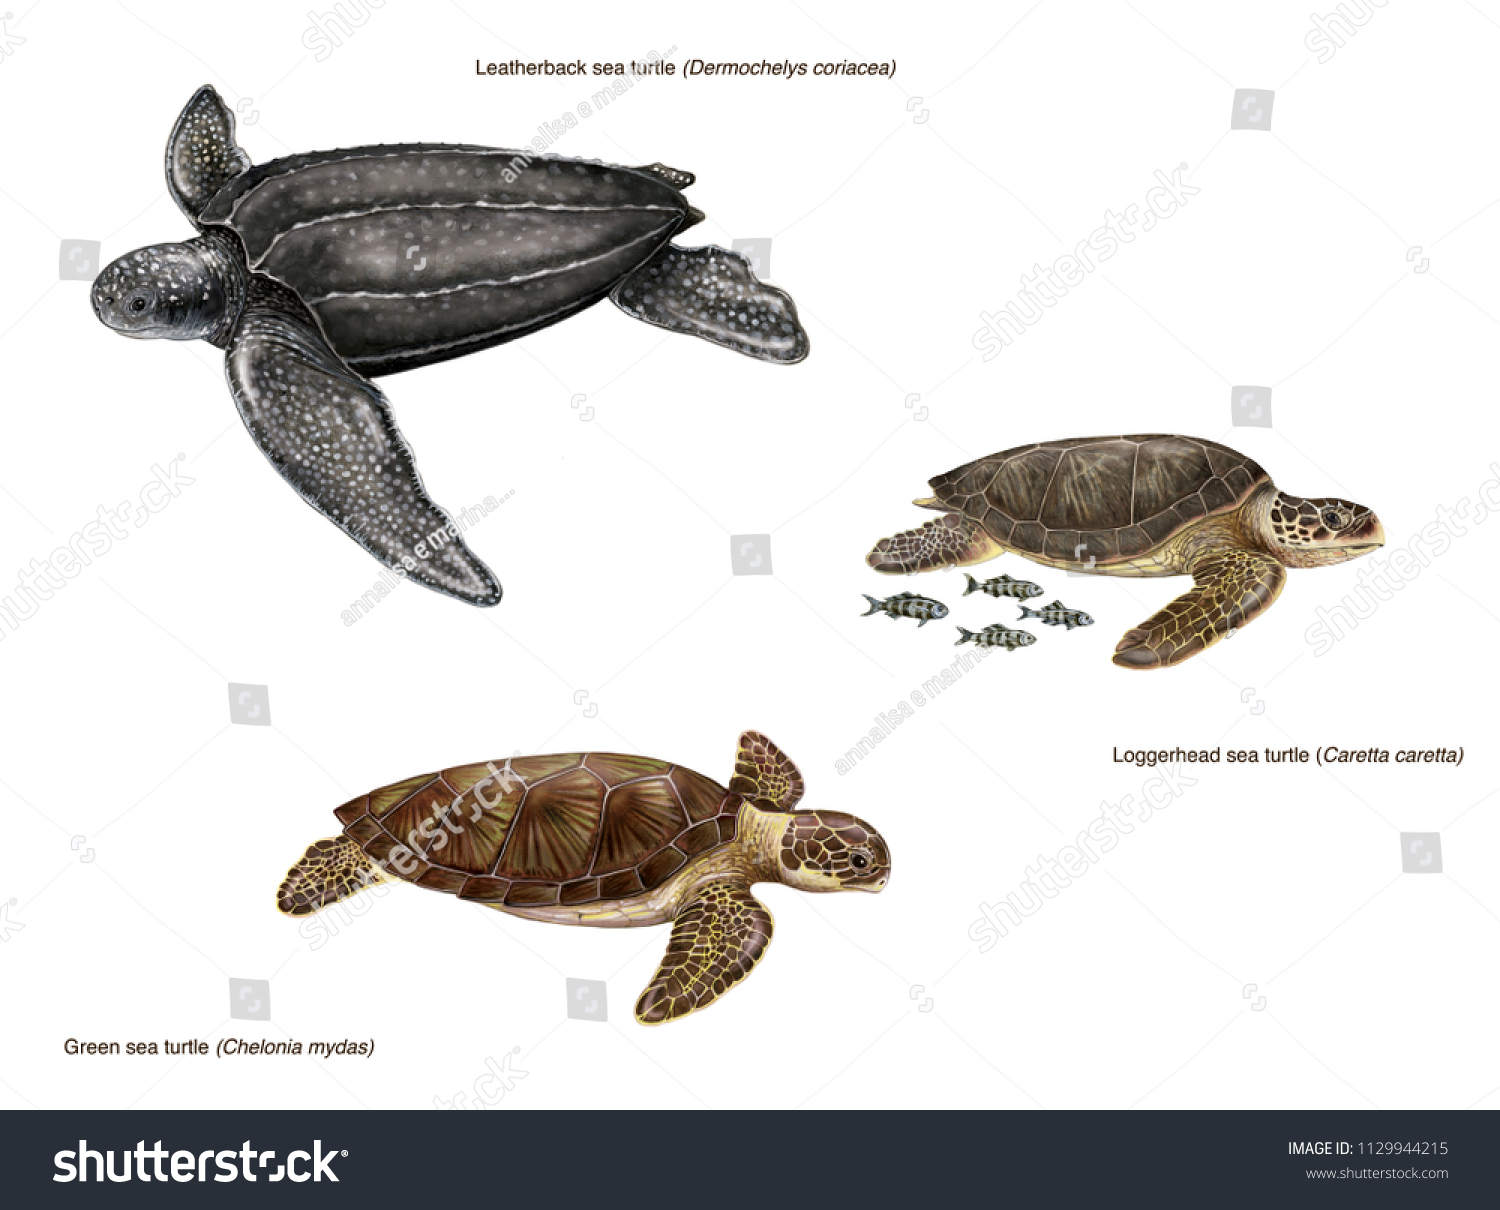 scientific illustration 3 species sea turtles stock illustration